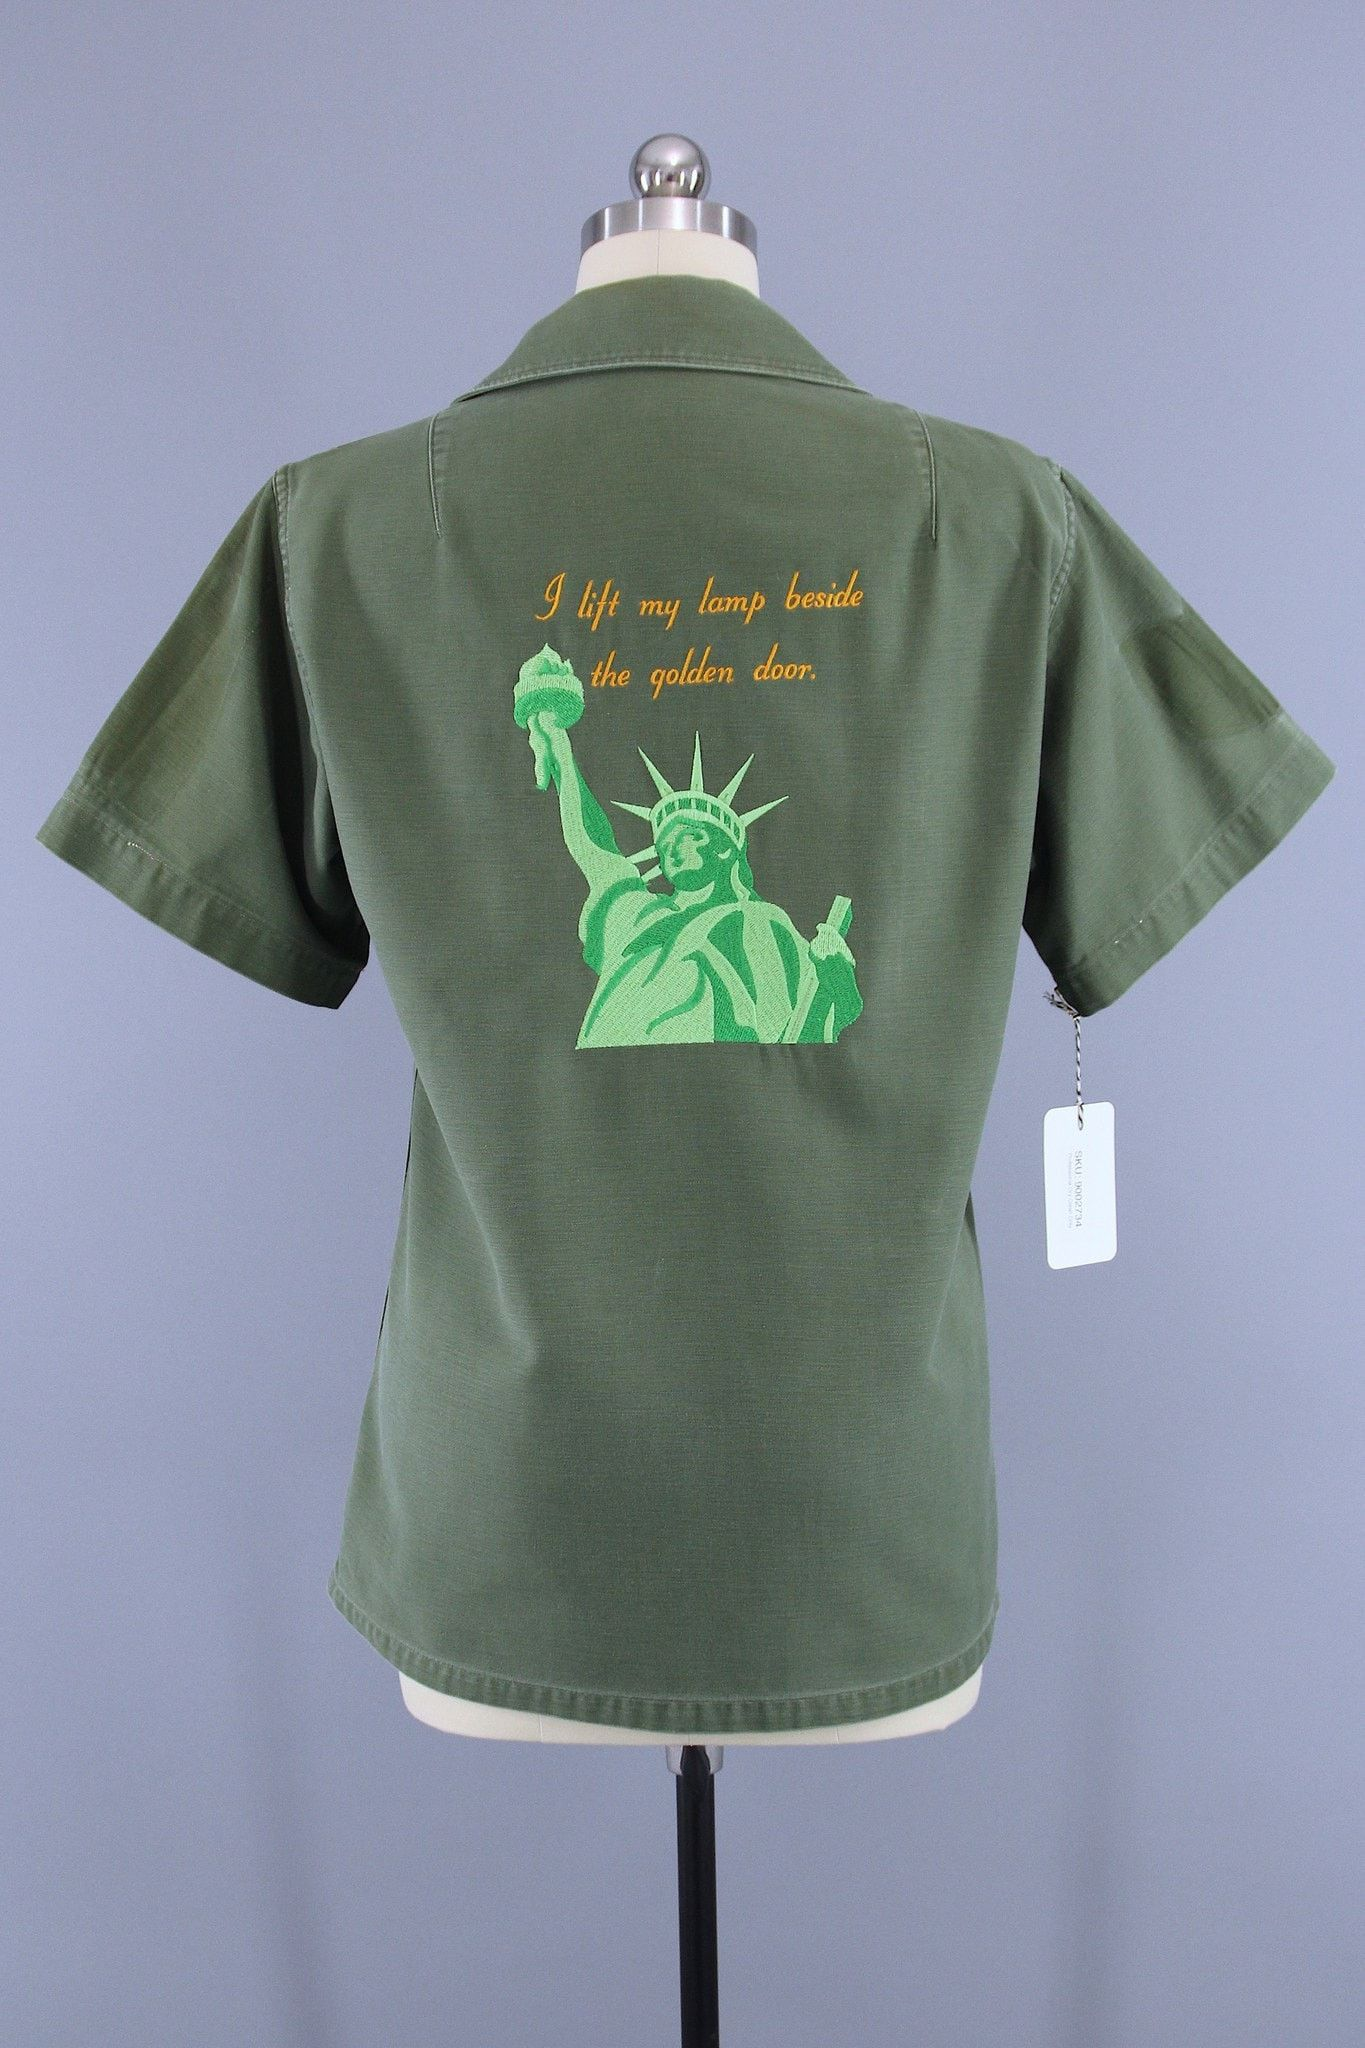 Vintage Statue Of Liberty Embroidered 70s Camo Shirt / I Lift My Lamp Beside  The Golden